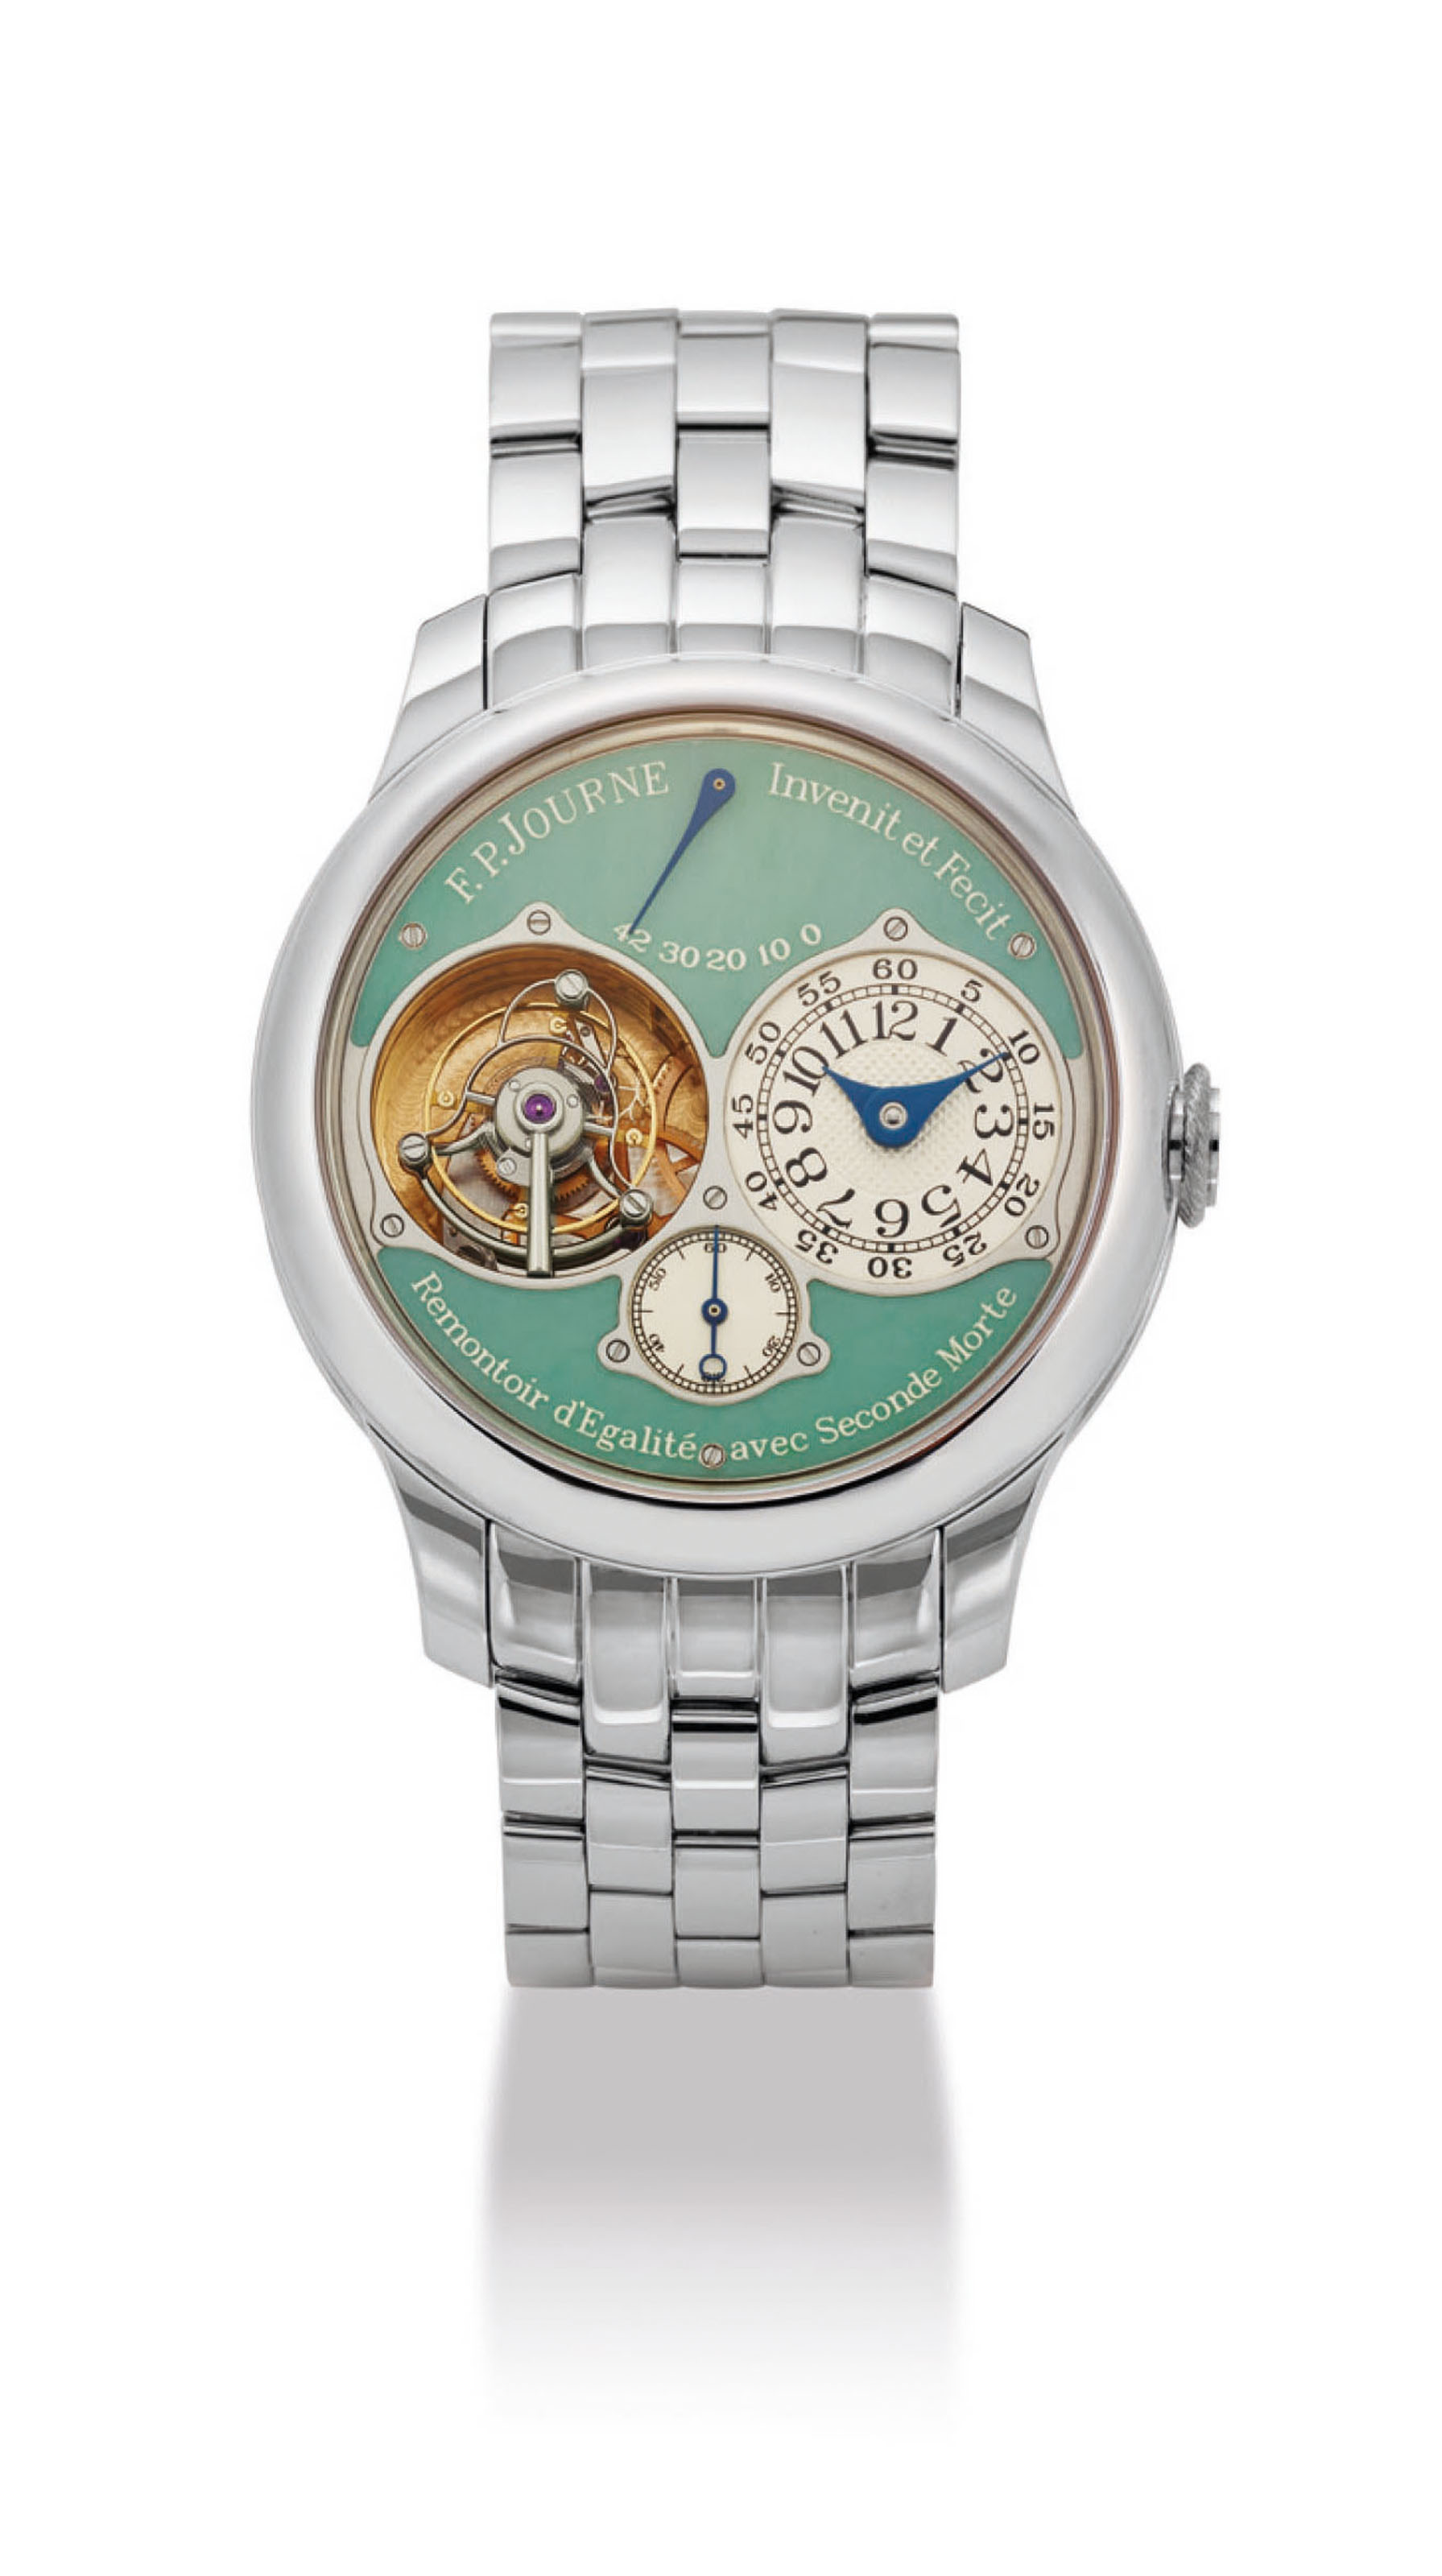 breguet classique platinum watches complication united tourbillon london in